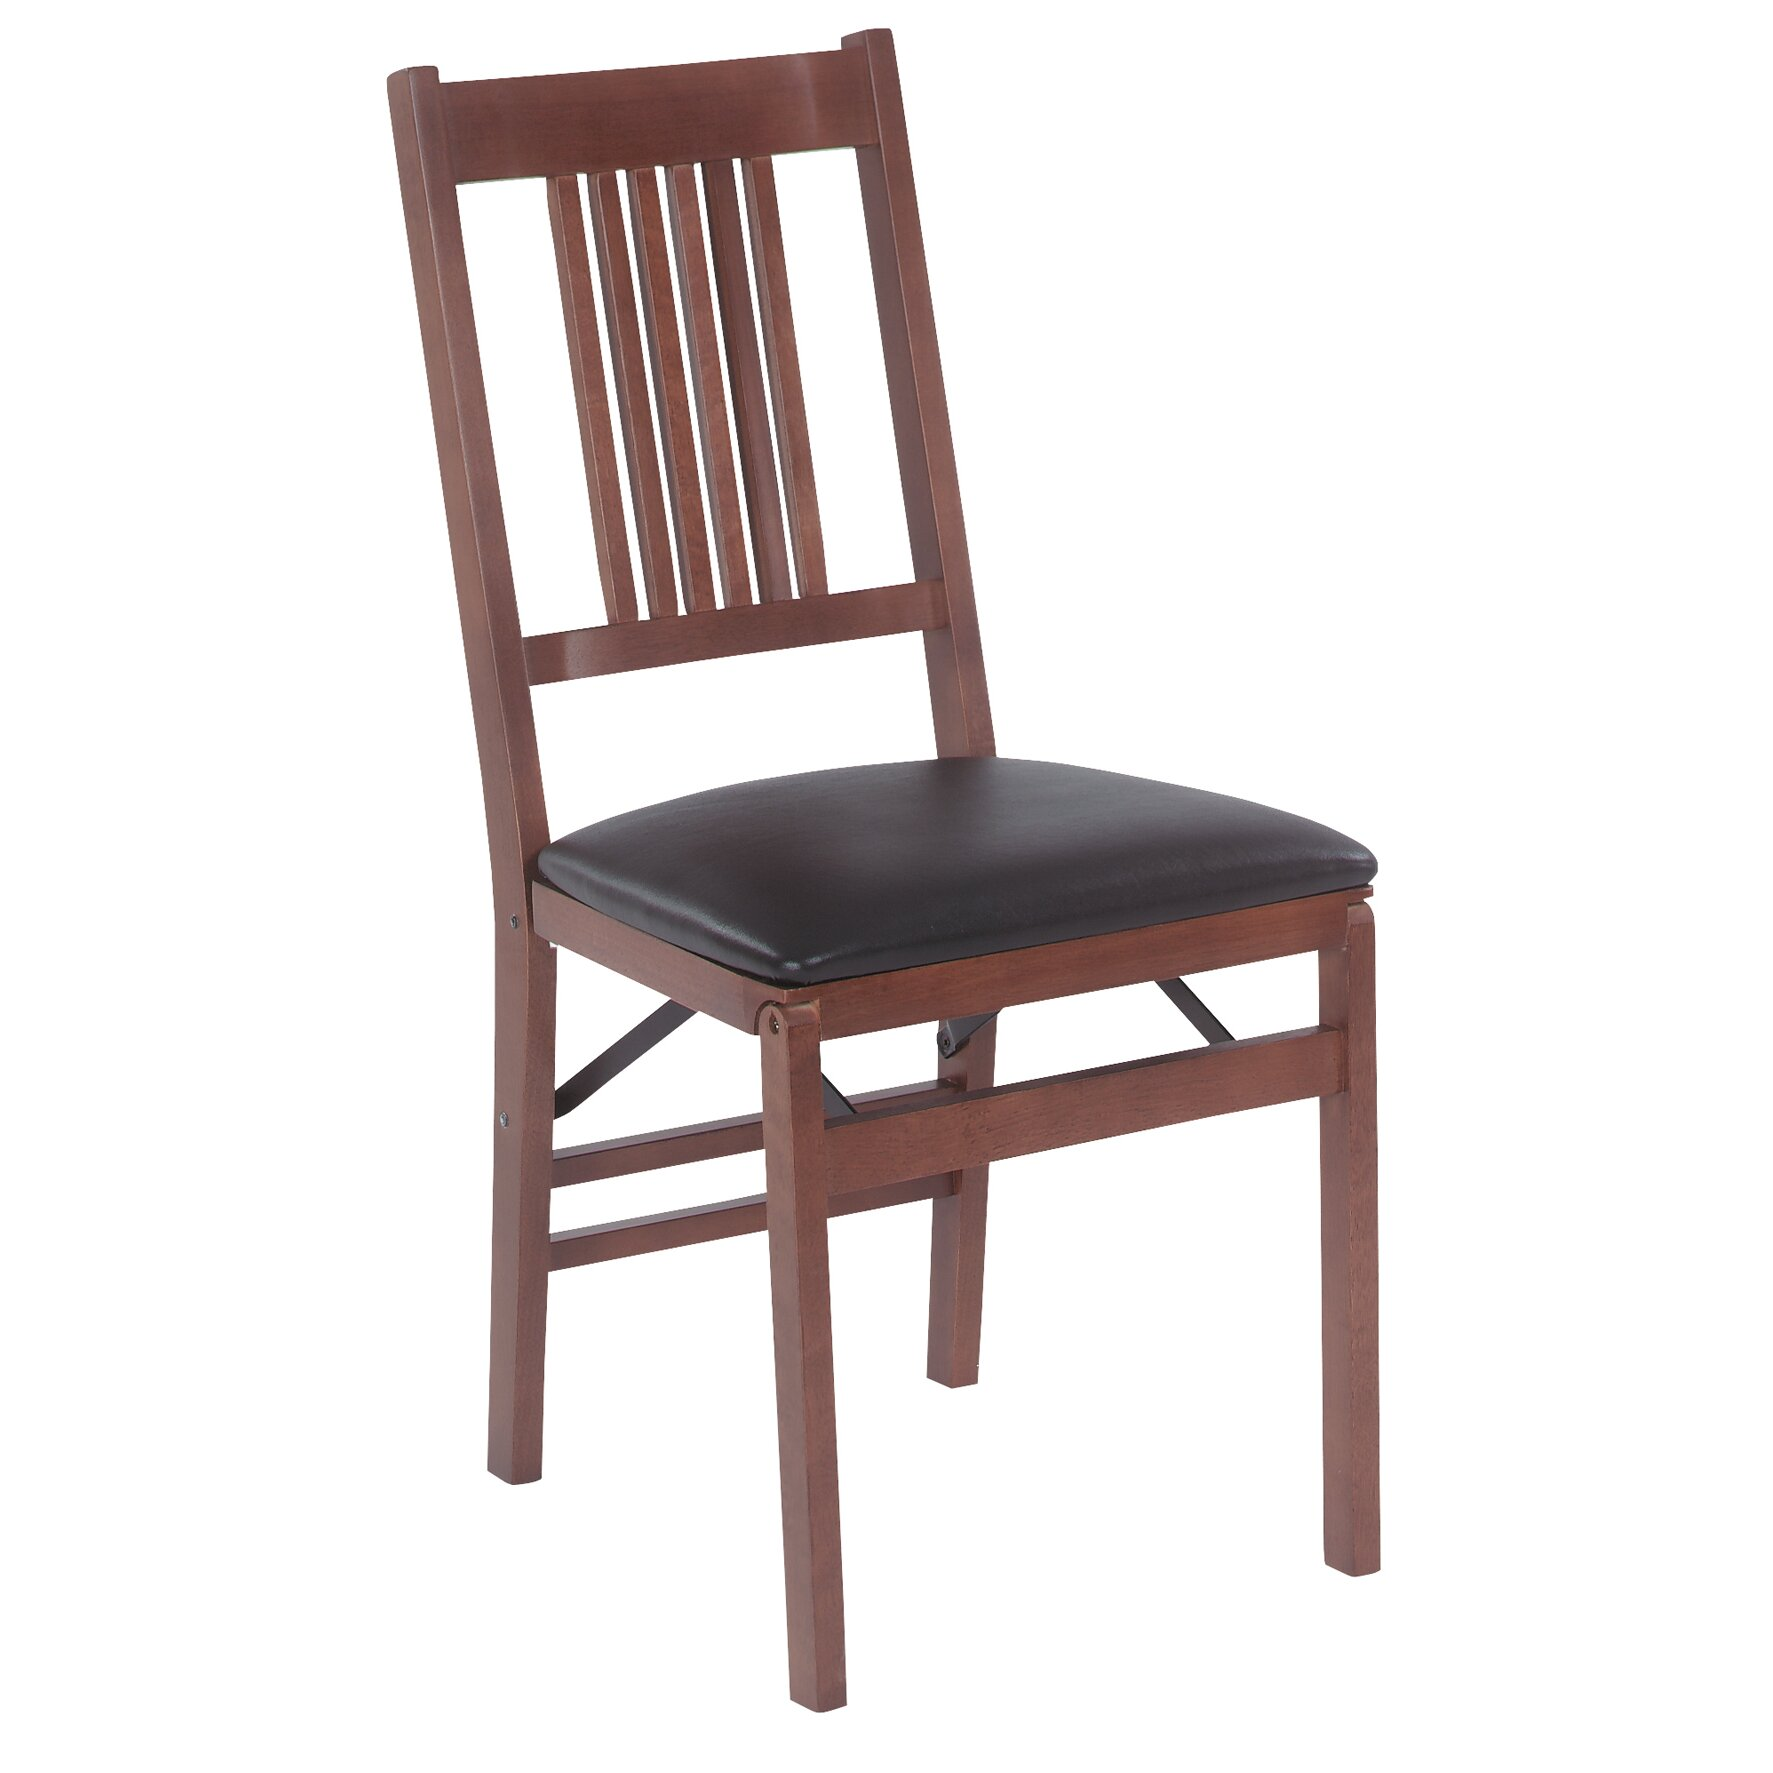 stakmore true mission wood folding chair with vinyl seat reviews wayfair. Black Bedroom Furniture Sets. Home Design Ideas